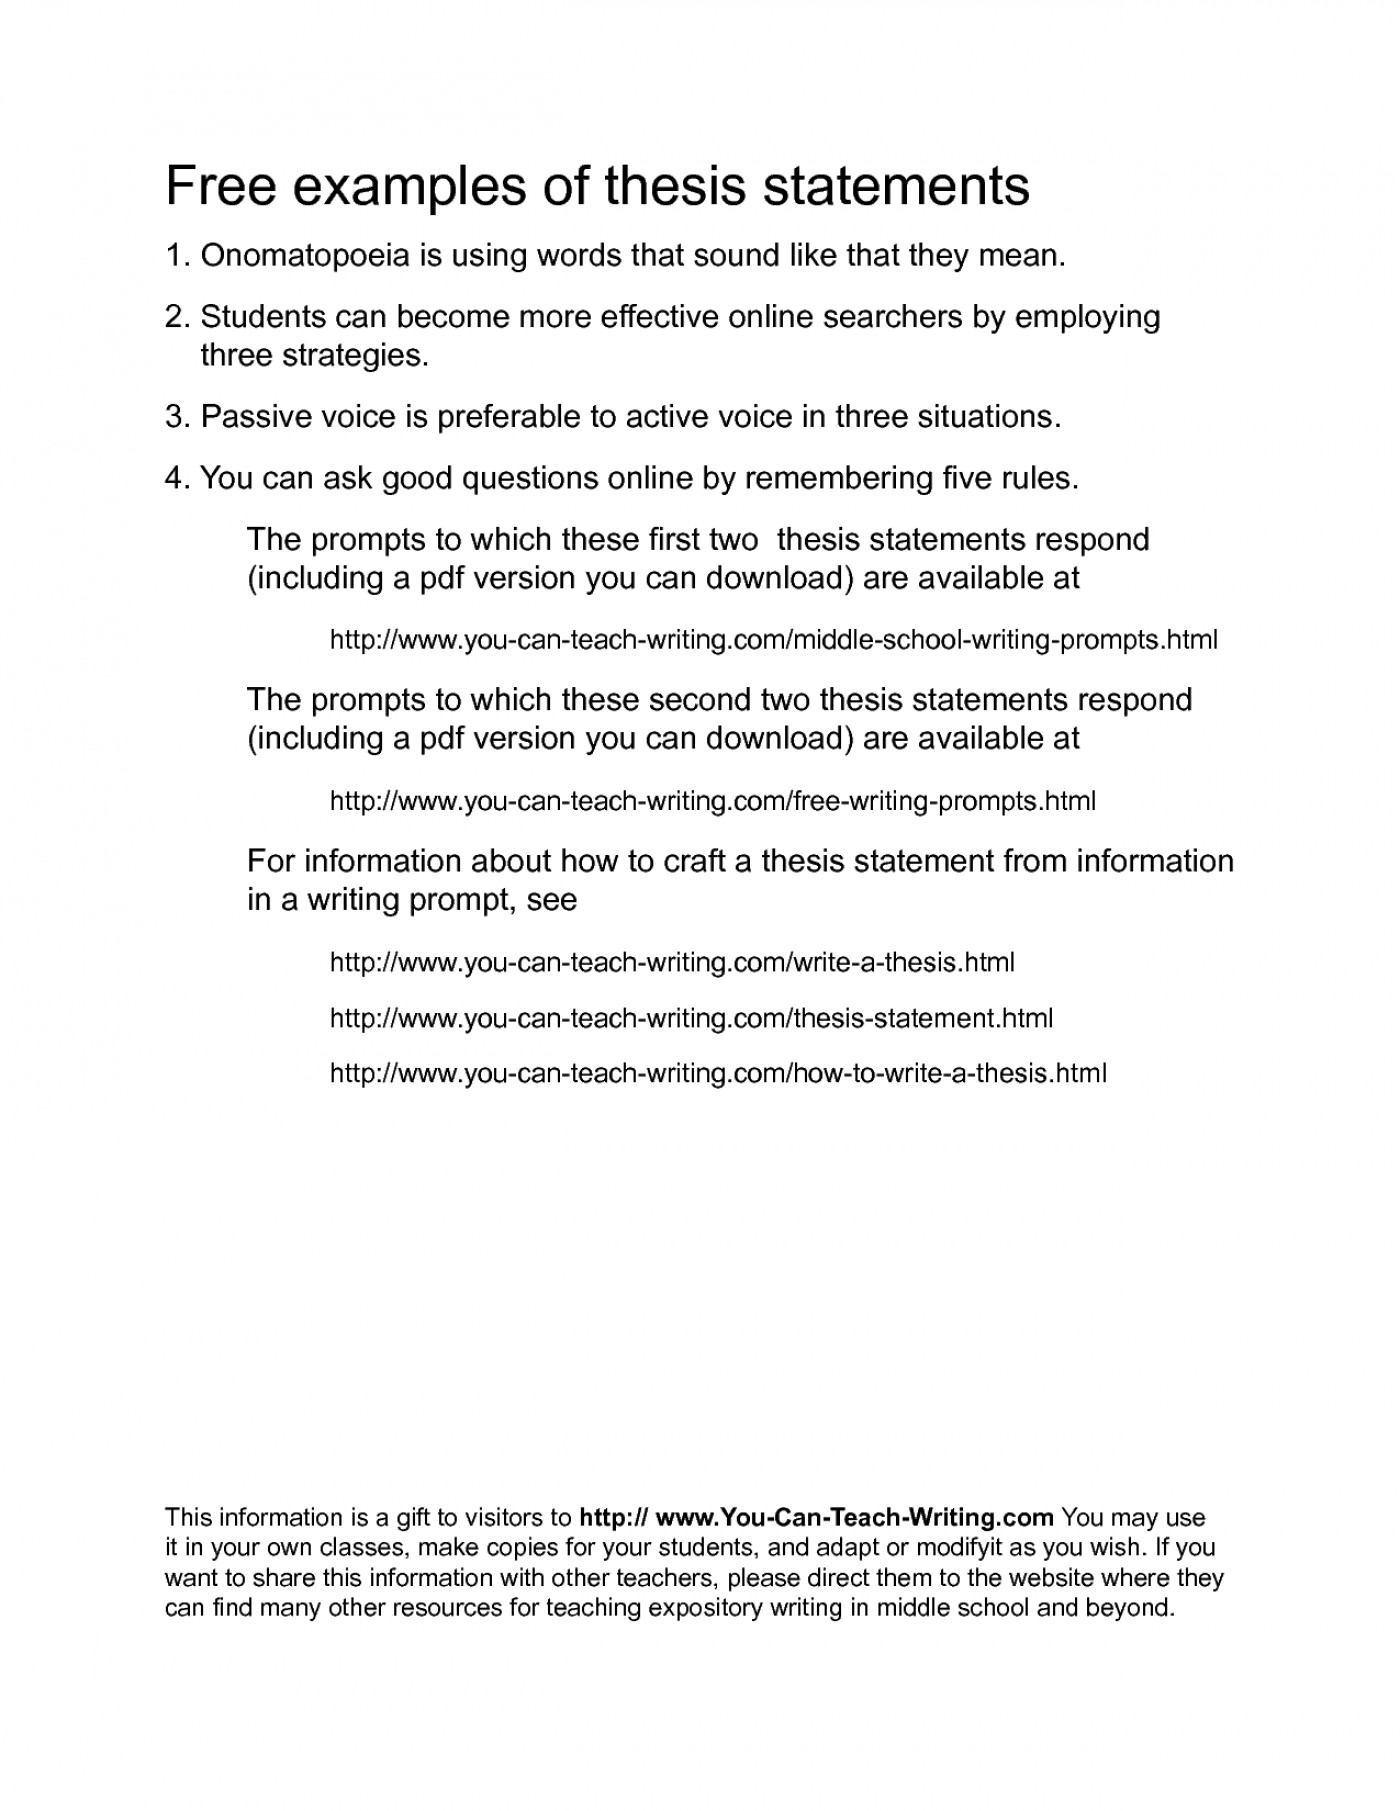 Essay With Thesis Statement  Narrative Essay Examples High School also Persuasive Essay Samples High School  Argumentative Thesis Statement For Research Paper Essay  How To Write An Essay For High School